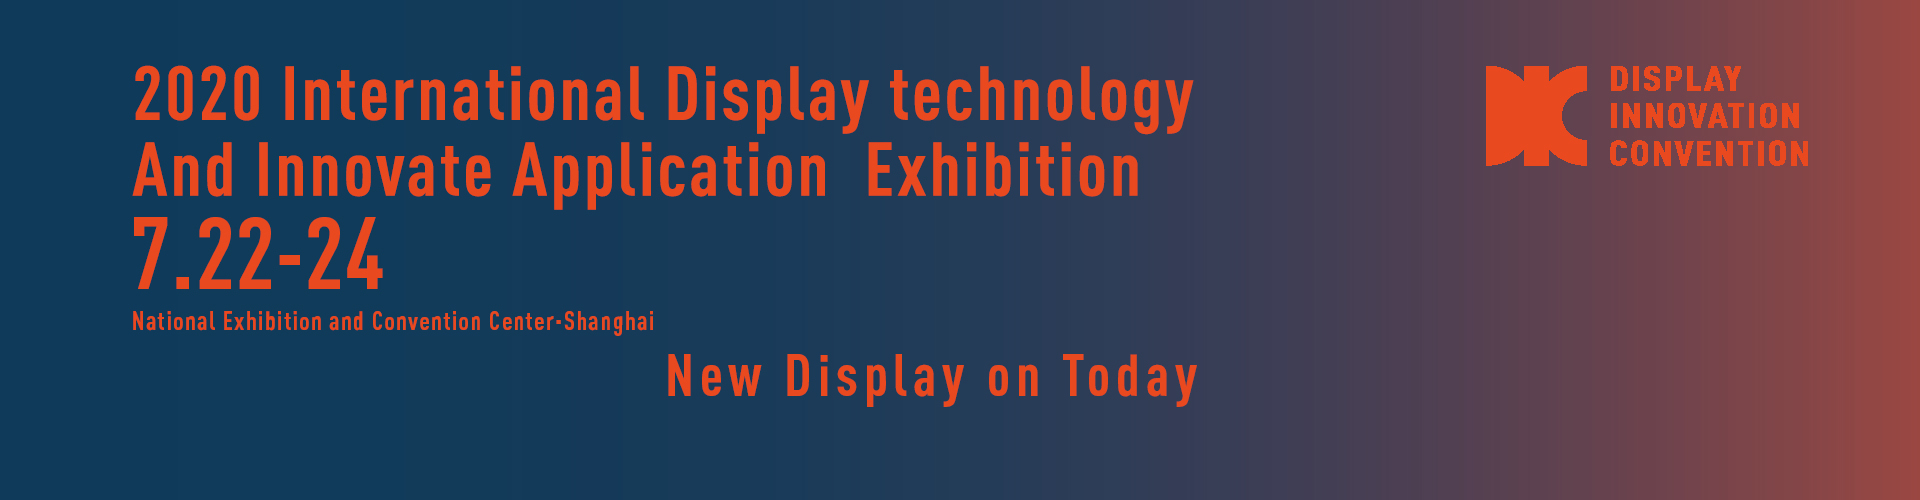 DIC EXPO 2020 International Display Technology and Innovate Application Exhibiti